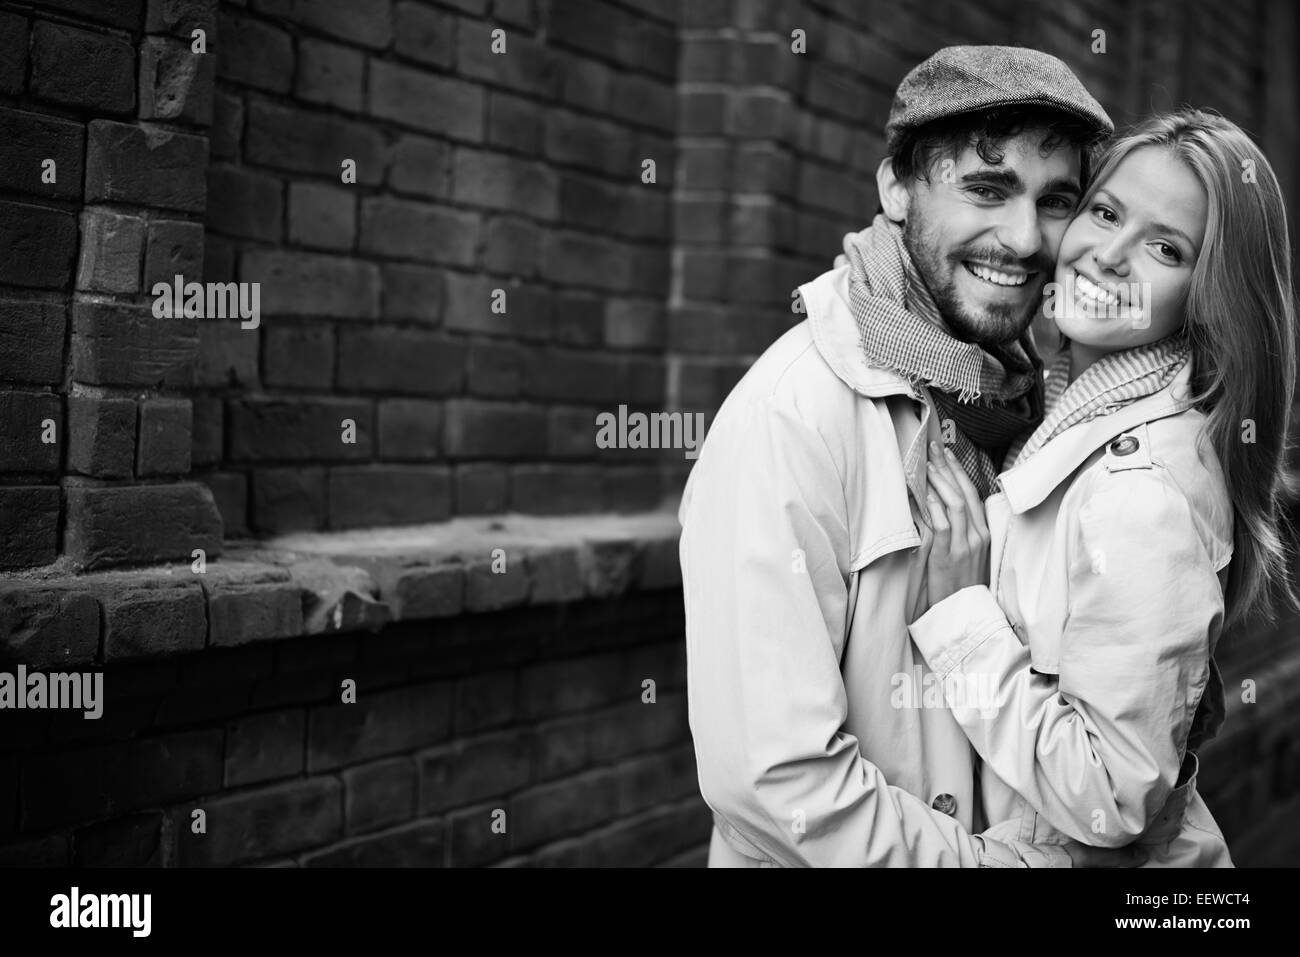 Portrait of romantic dates in stylish casualwear looking at camera - Stock Image